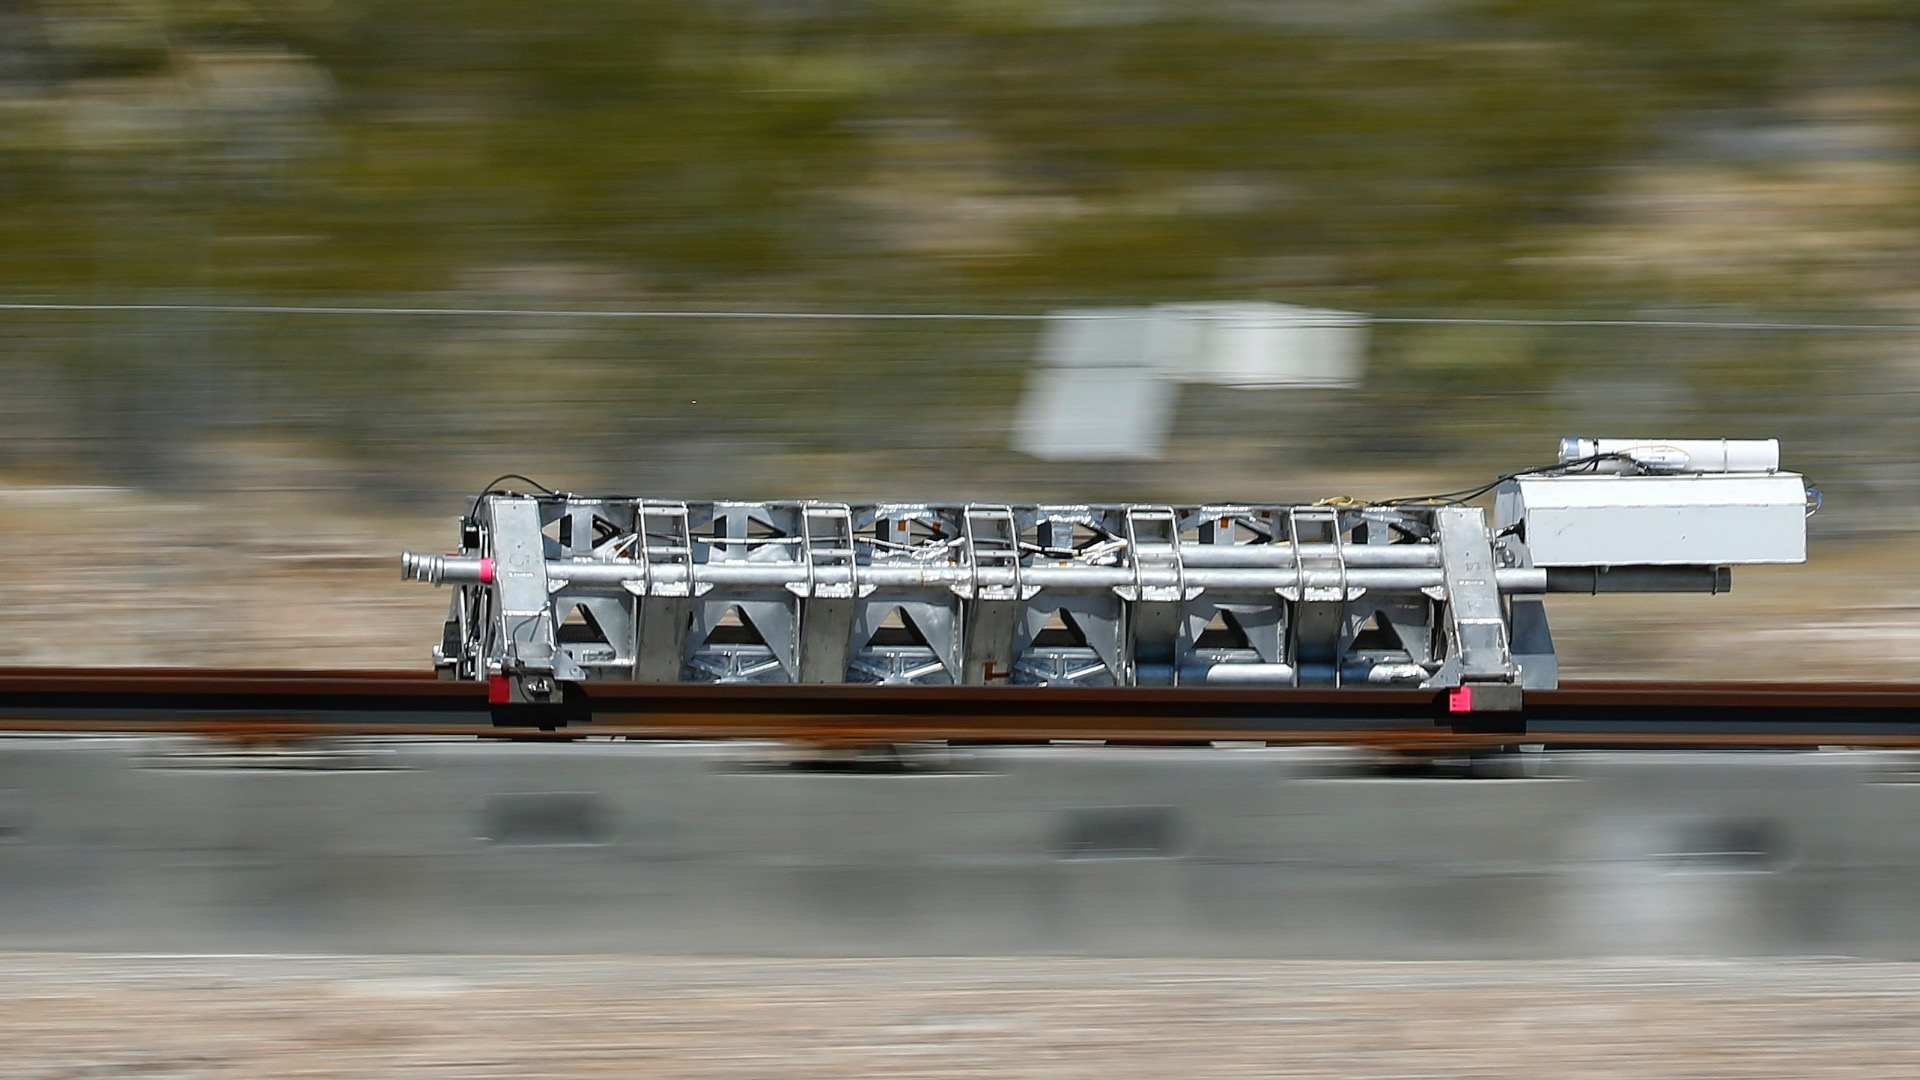 Watch this Hyperloop prototype in action